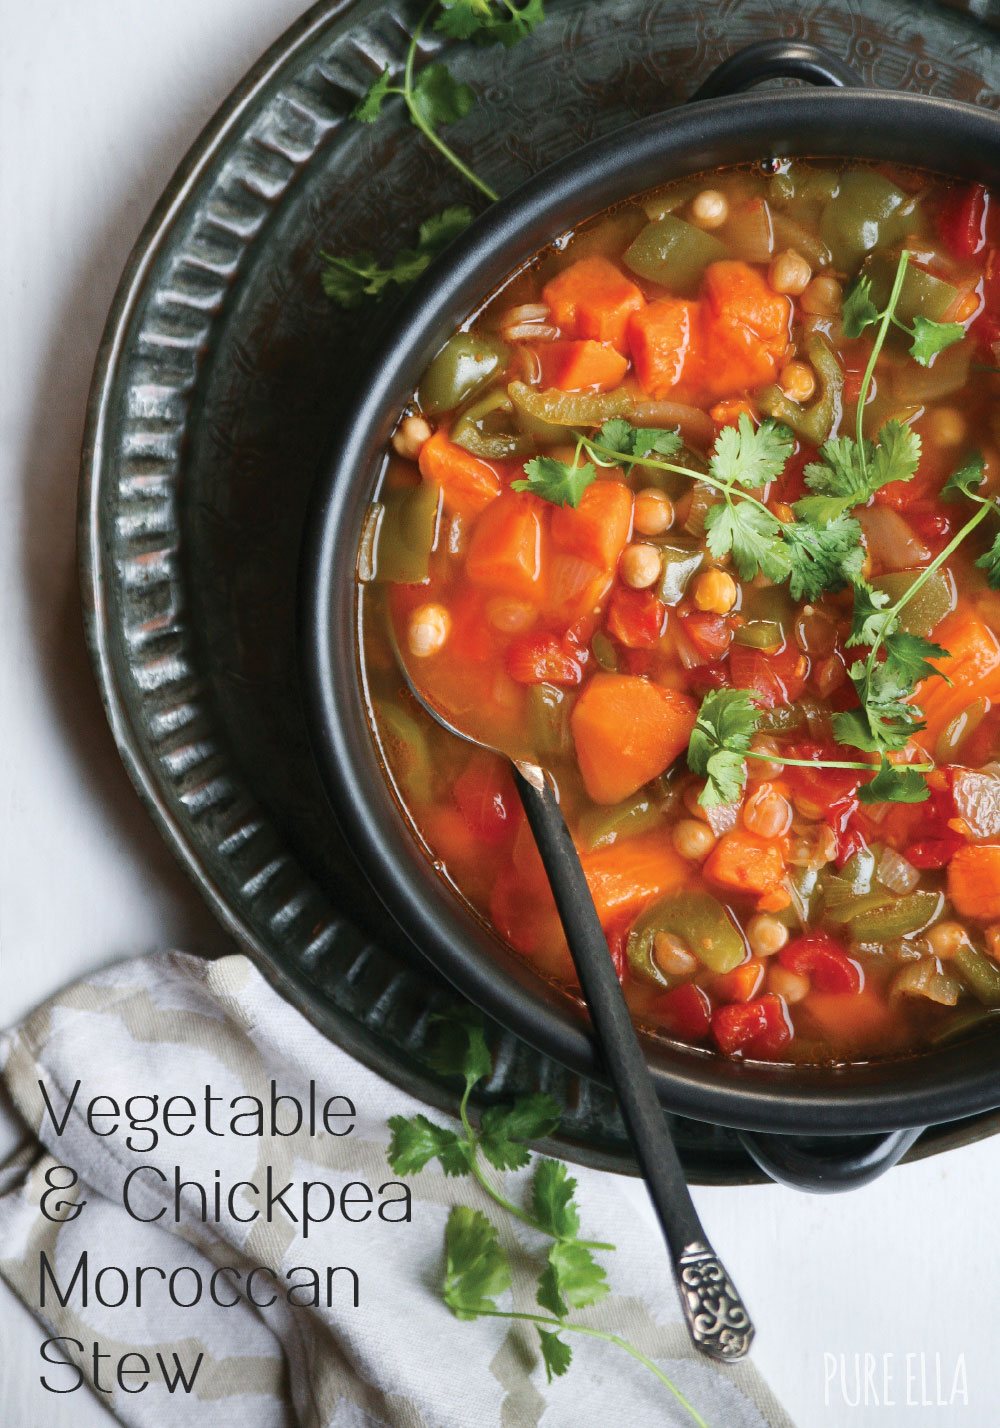 Pure-Ella-Vegetable-and-Chickpea-Moroccan-Stew